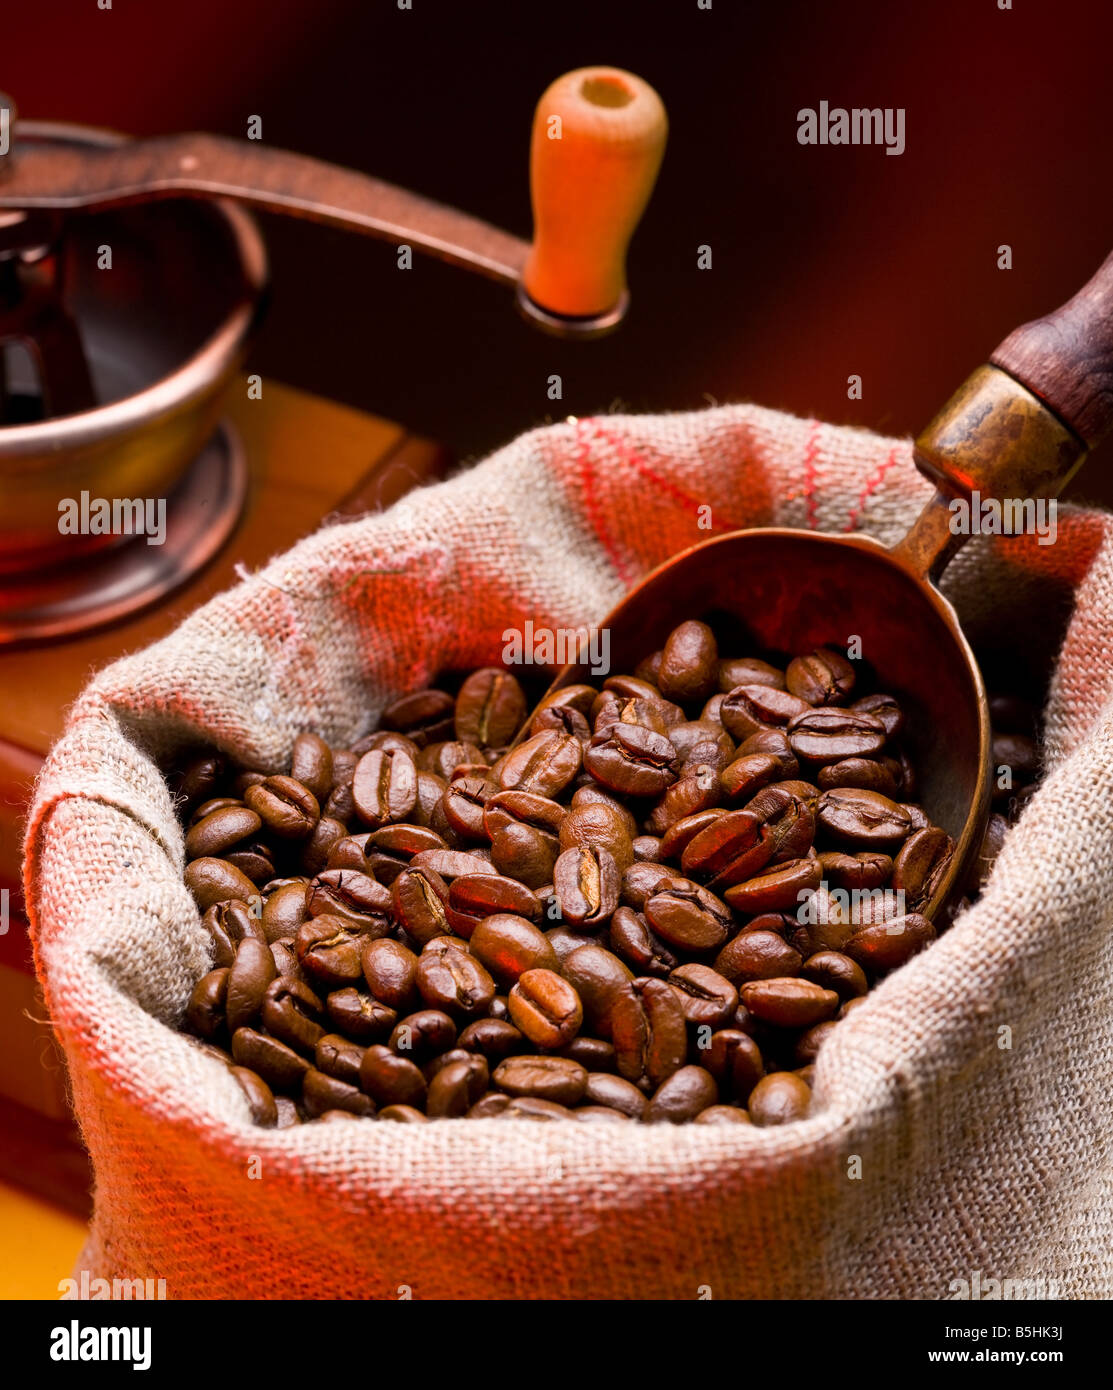 coffee is in a sack - Stock Image